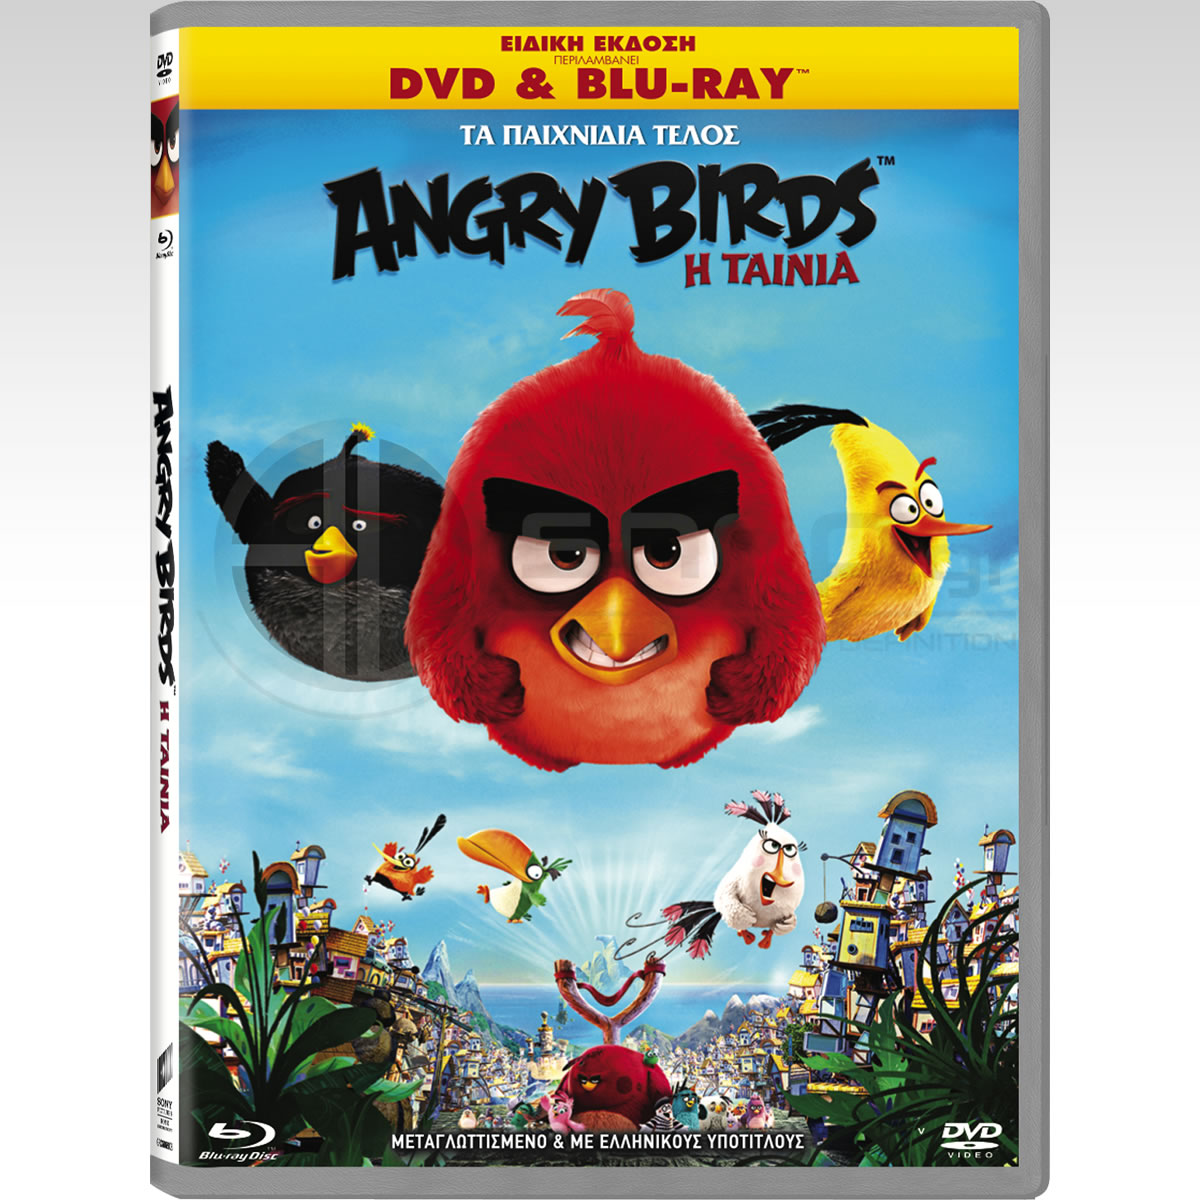 ANGRY BIRDS: THE MOVIE - ANGRY BIRDS: Η ΤΑΙΝΙΑ Special Edition Combo (DVD + BLU-RAY) & ΜΕΤΑΓΛΩΤΤΙΣΜΕΝΟ ΣΤΑ ΕΛΛΗΝΙΚΑ